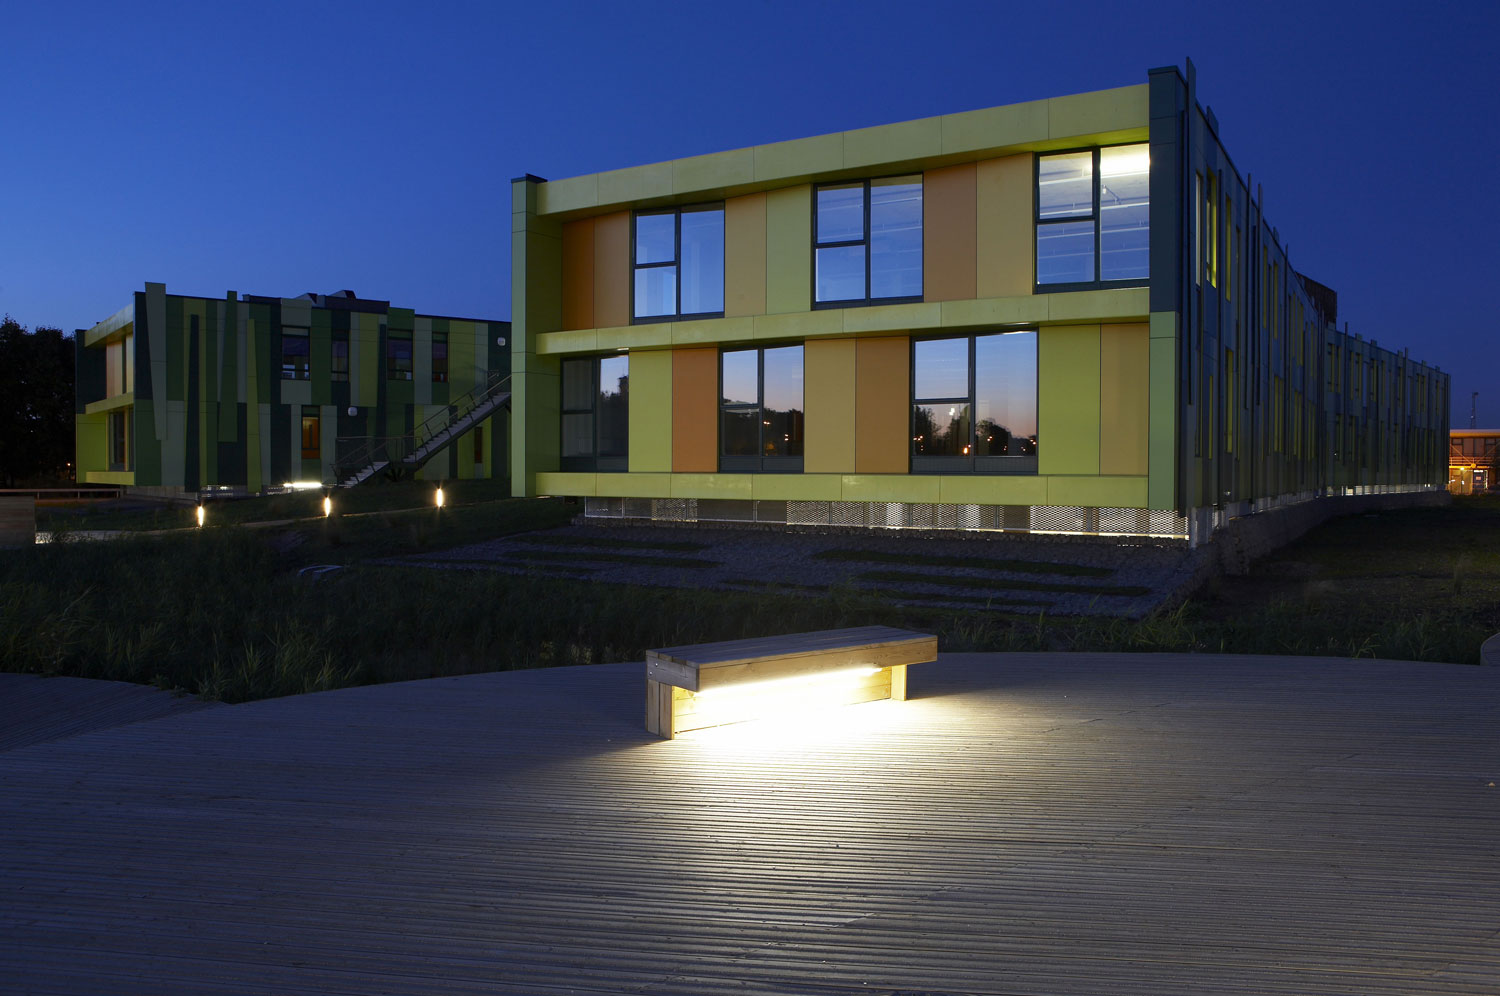 No. 1 Nottingham Science Park at Dusk | Architecture Detail Photography